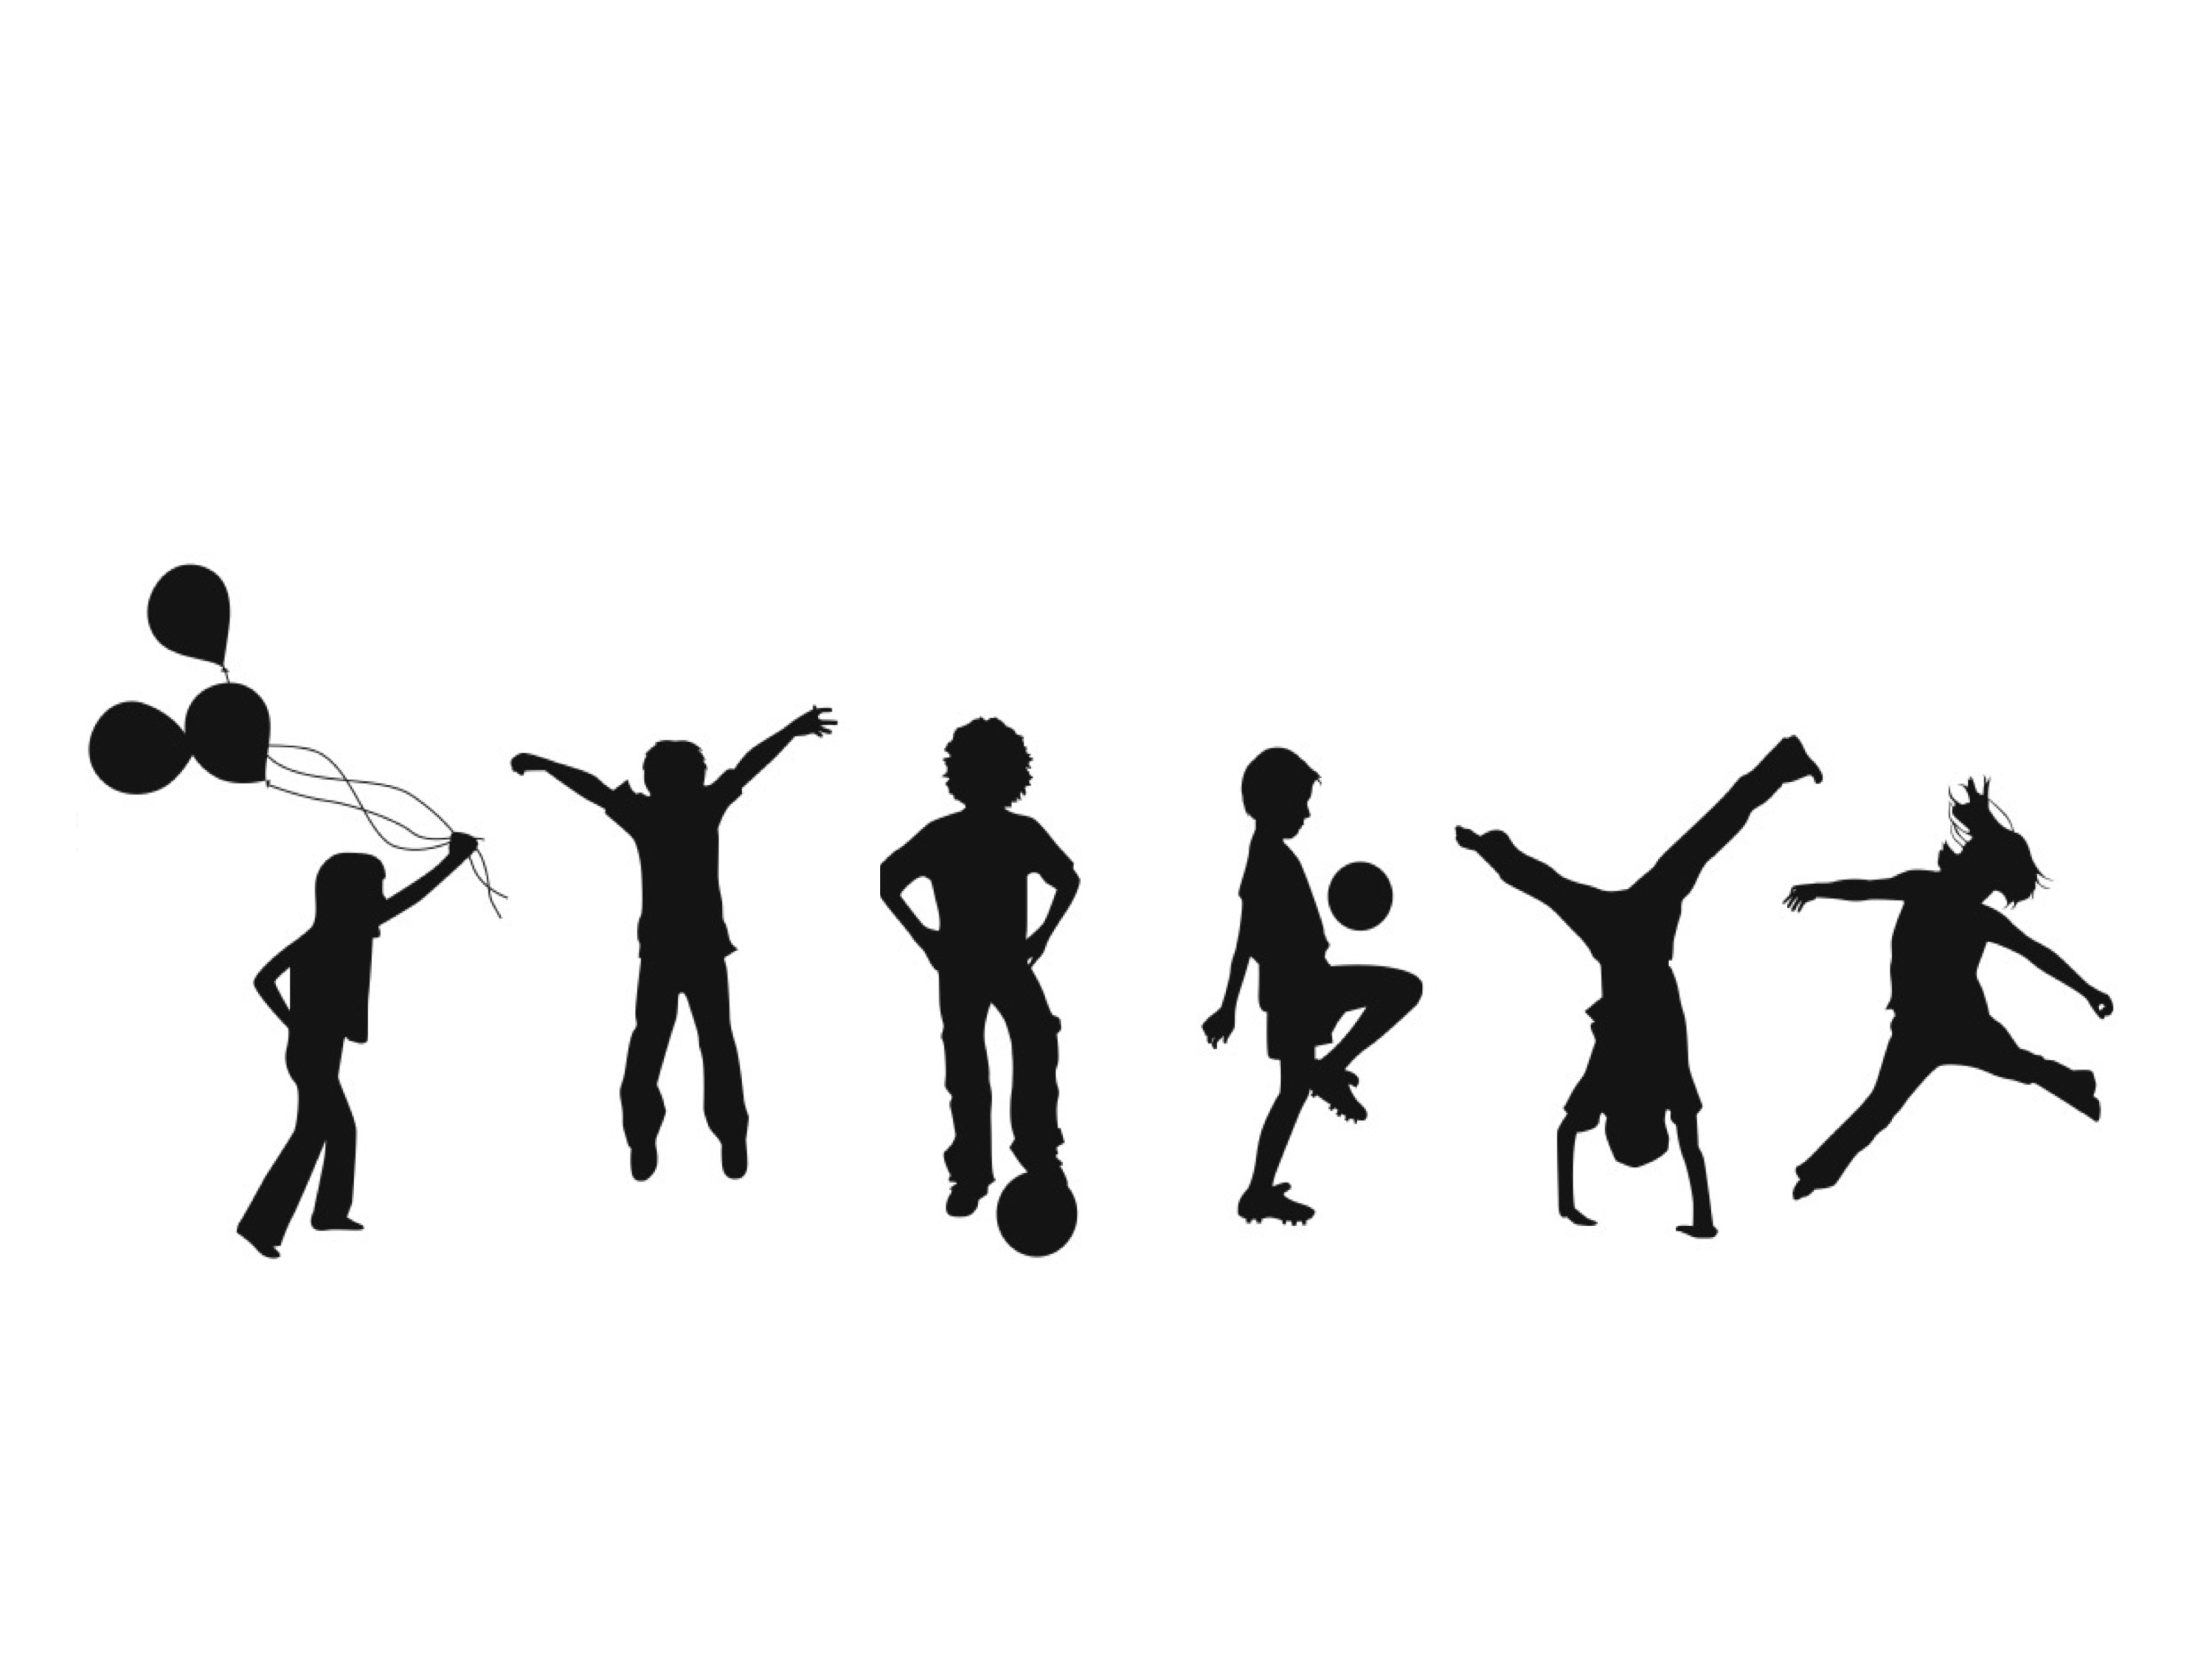 Kid Silhouette Clip Art at GetDrawings.com.